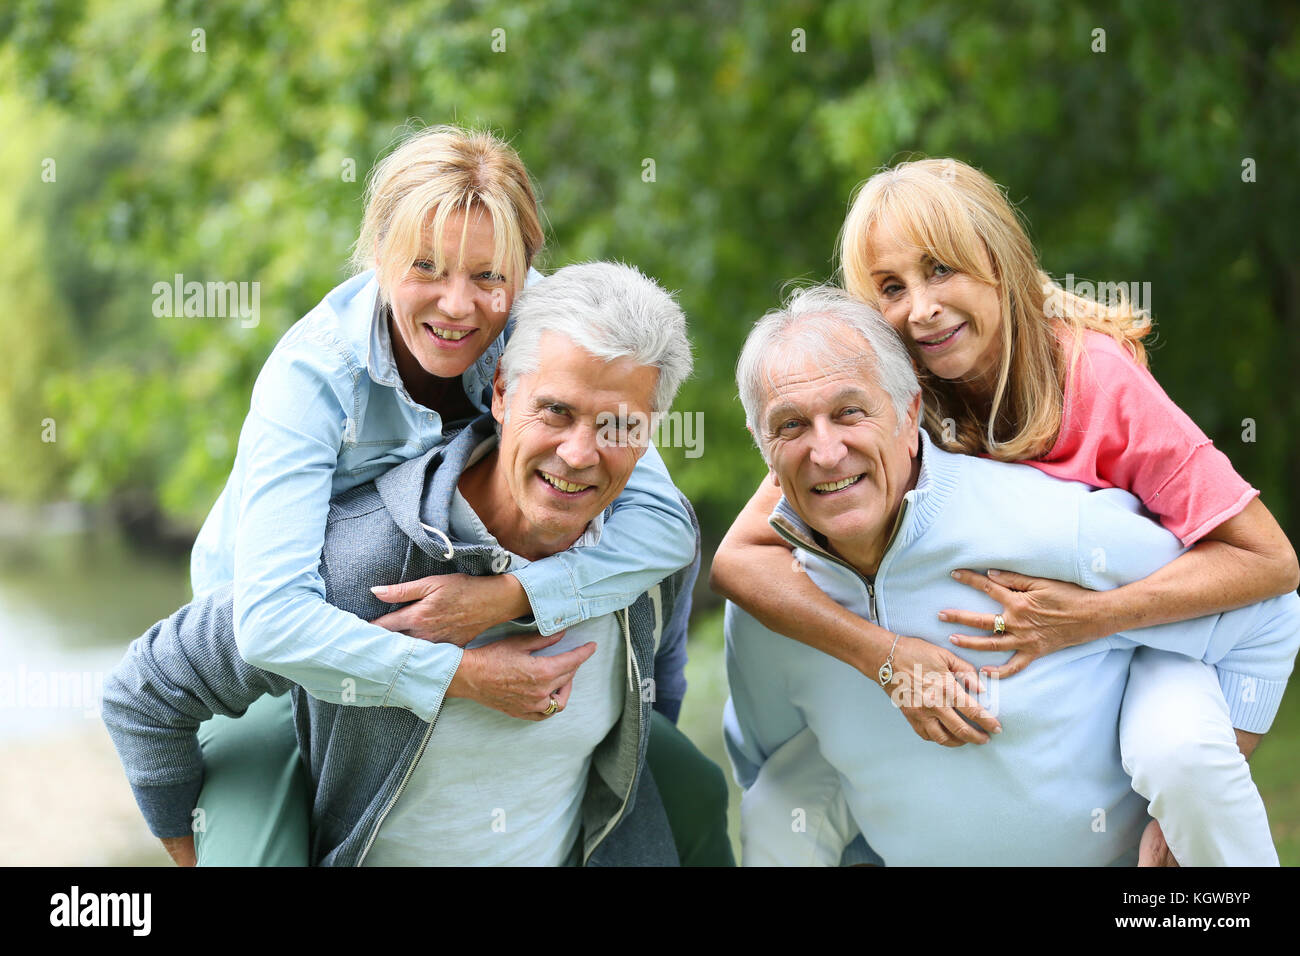 Senior men giving piggyback ride to senior women - Stock Image